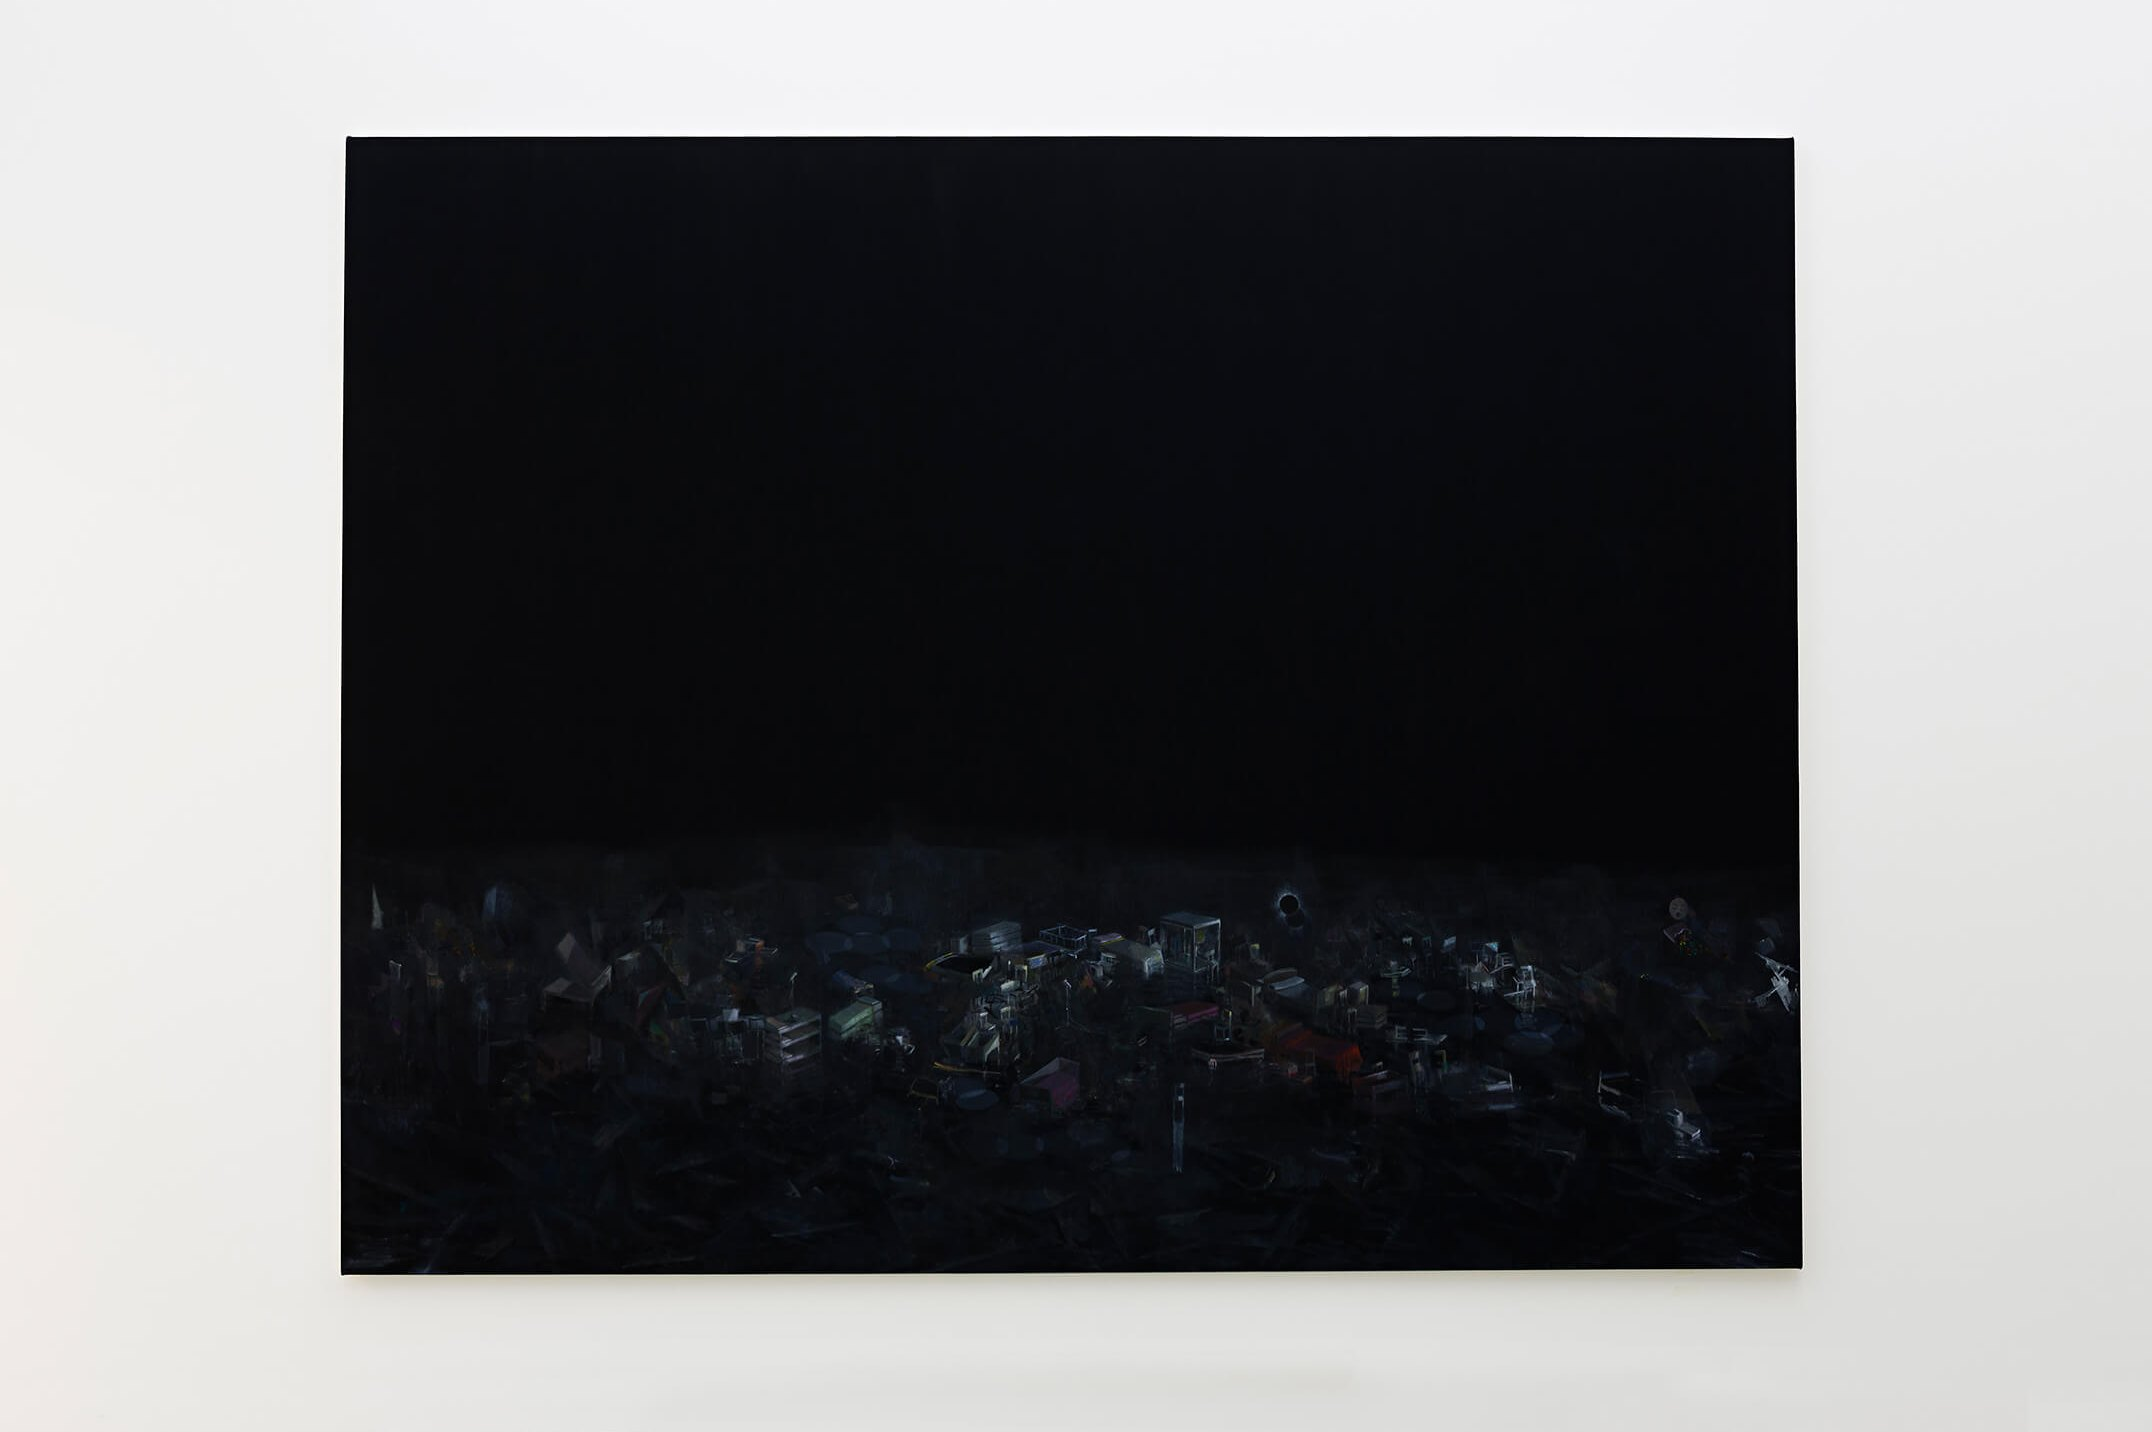 Guillermo Kuitca, <em>Doble-eclipse</em>, 2013, oil on wood, 283 × 362 cm - Mendes Wood DM